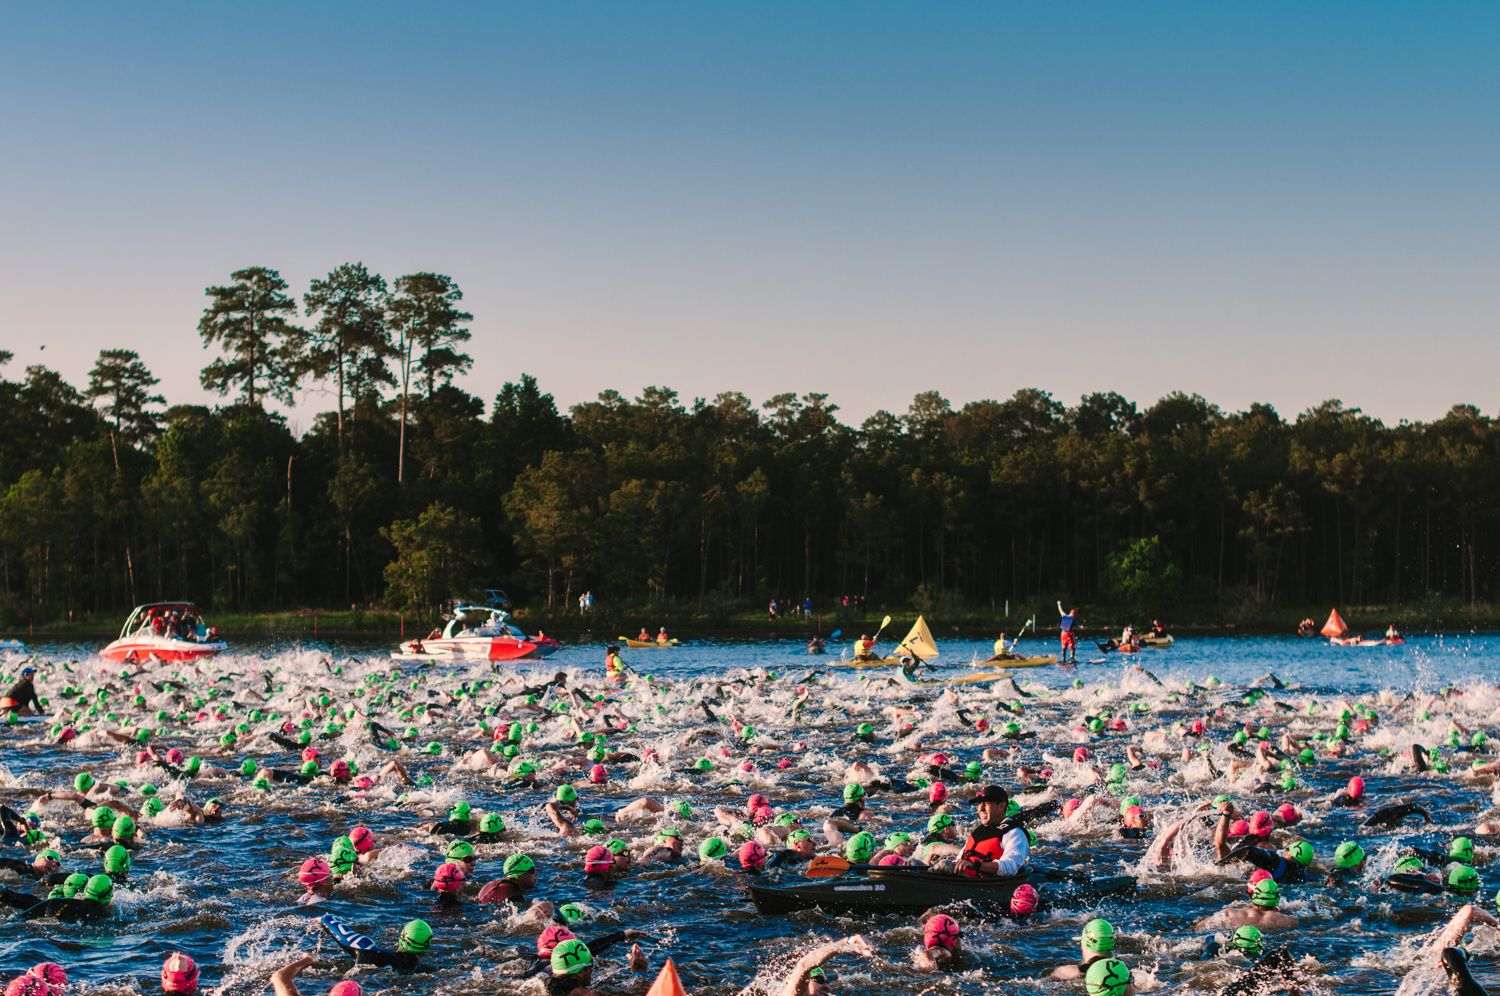 The start of Herman Memorial Ironman Texas was announced with a loud canon that shook the quiet morning in The Woodlands, Texas.